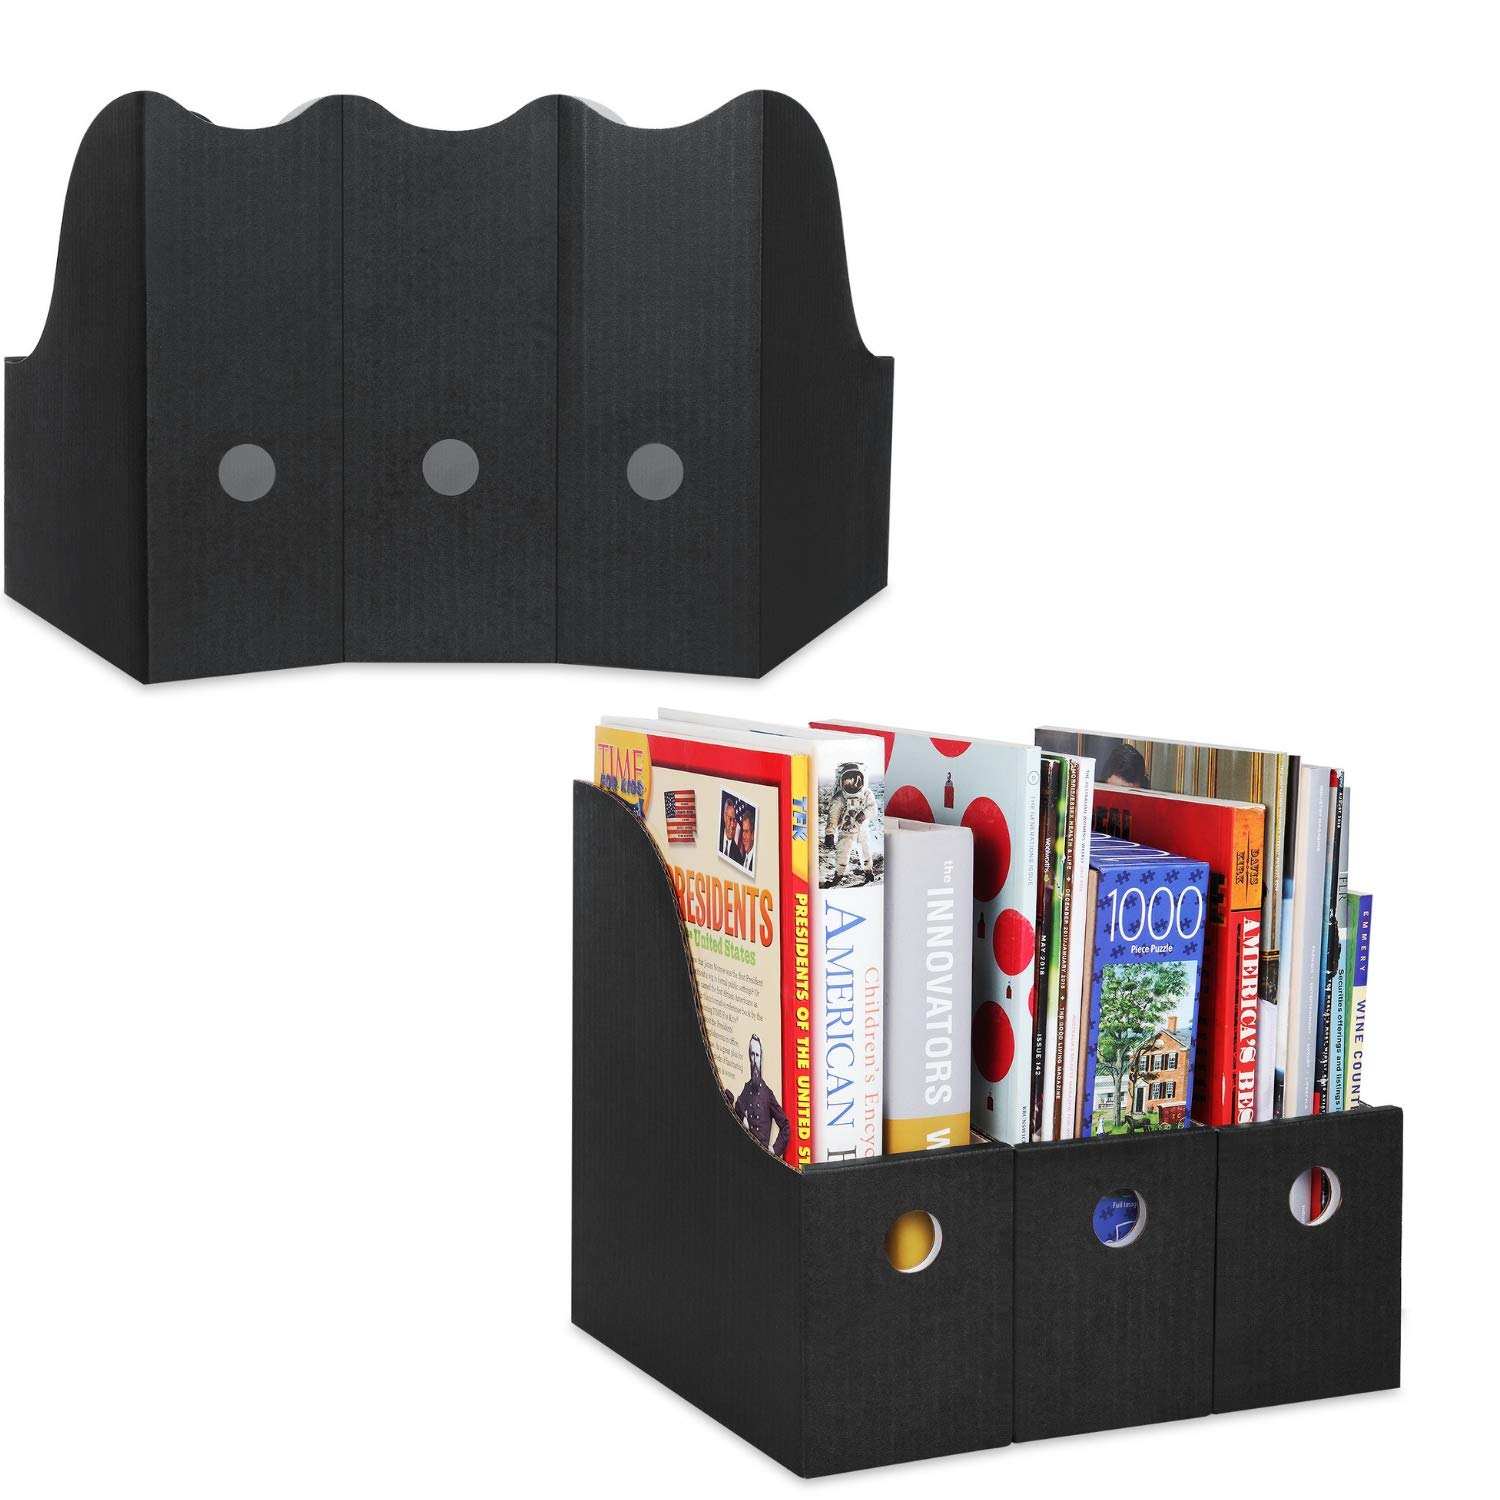 Magazine File Holder (Set of 24, Black), Sturdy Cardboard Magazine Holder, Folder Holder, Magazine Organizer, Folder Organizer, Magazine Box, File Storage, or Book Bins for Classroom Library Organizer by Dunwell